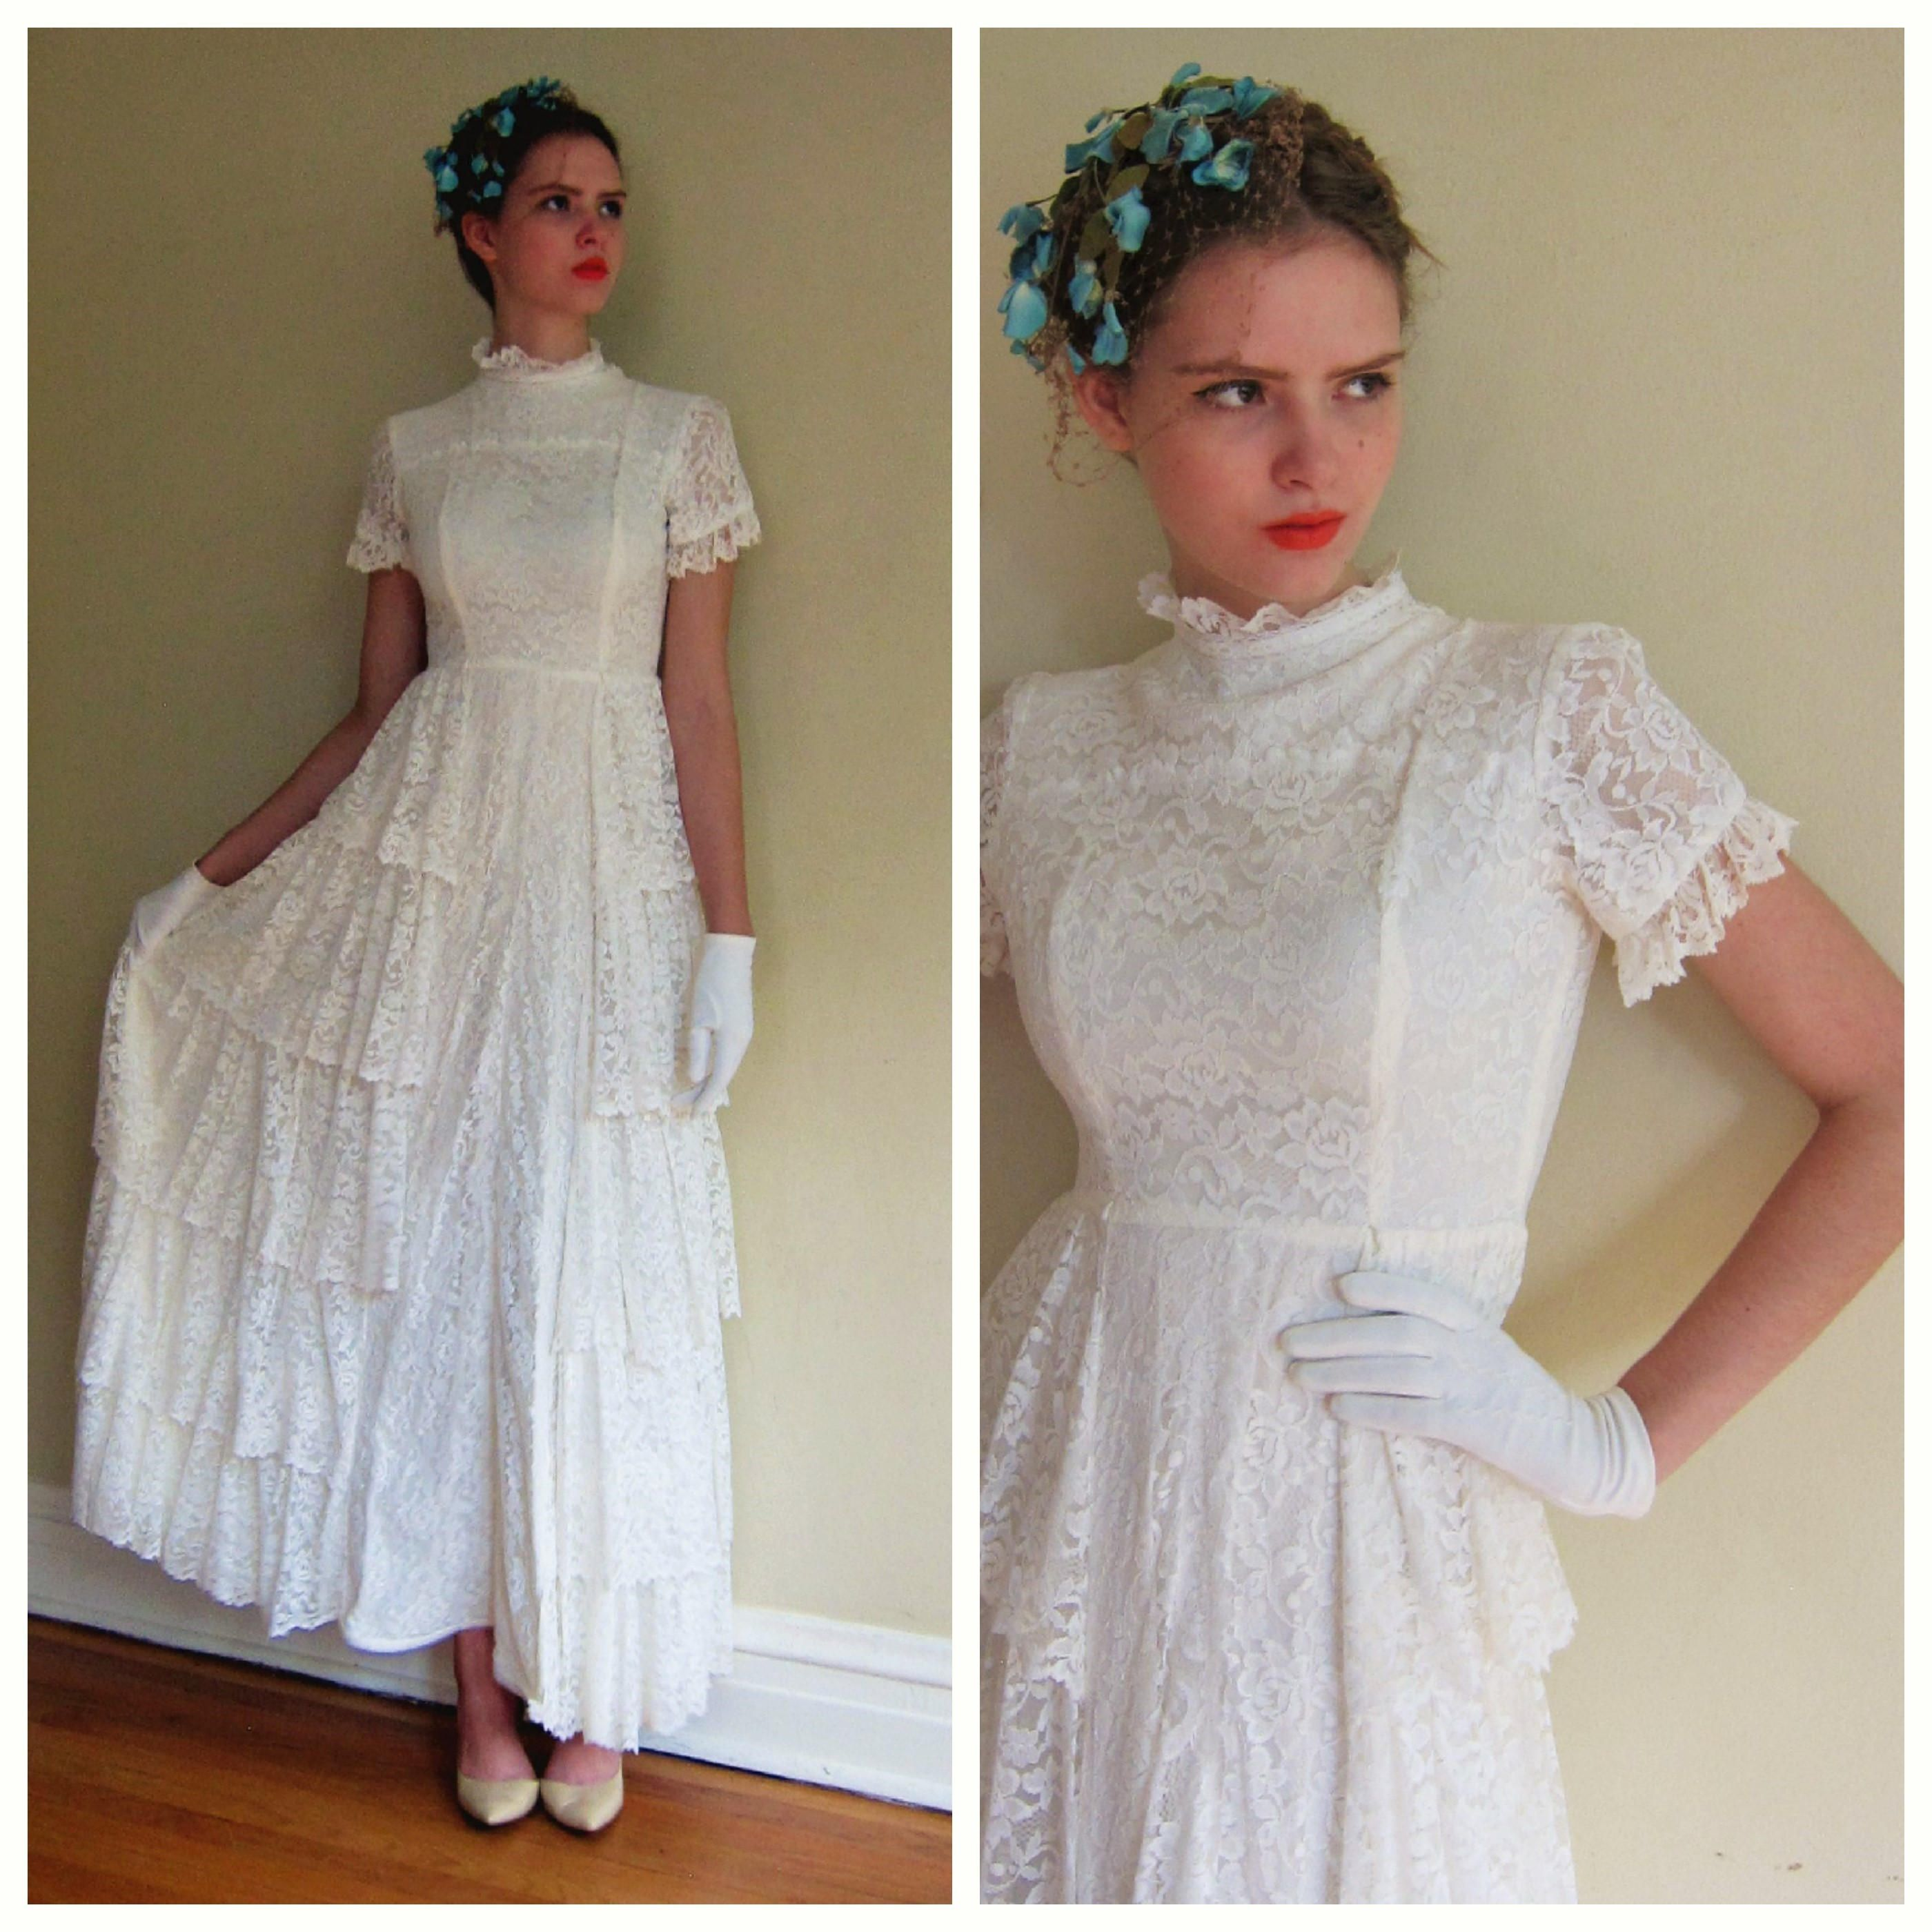 Vintage 1930s White Lace Wedding Dress Tiered Skirt 30s Short Sleeved Bridal Gown Small Short Sleeve Bridal Gown White Lace Wedding Dress Wedding Dresses Lace [ 2800 x 2800 Pixel ]